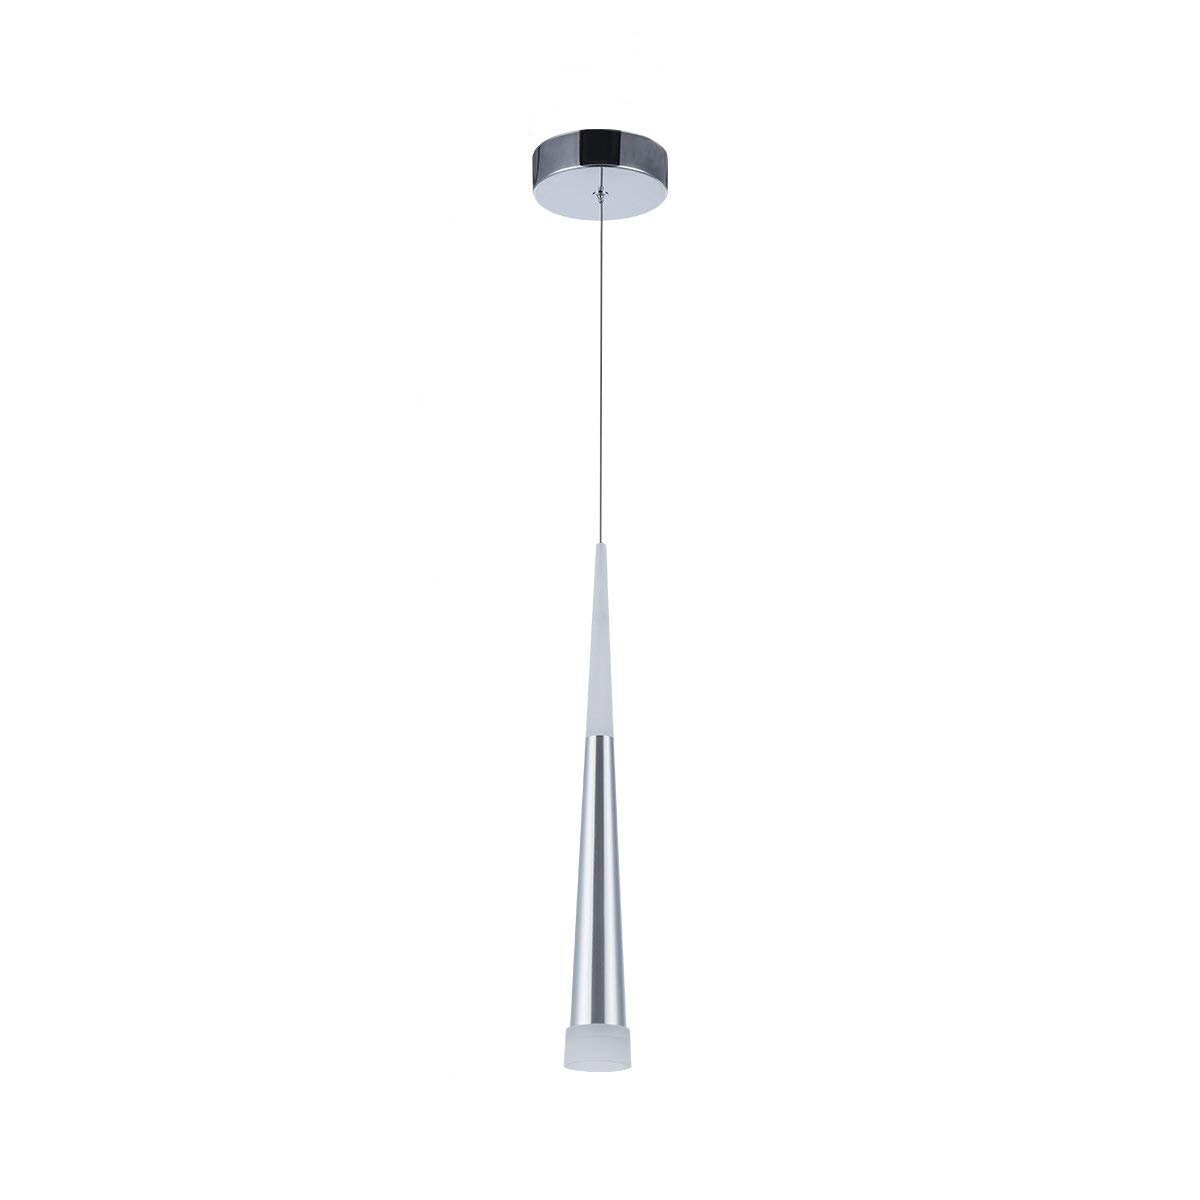 Modern Pendant Light, STARRYOL 7W LED Decoration Hanging Ceiling Light with Cone Style, Perfect for Living Room, Restaurant, Bedroom, Café etc